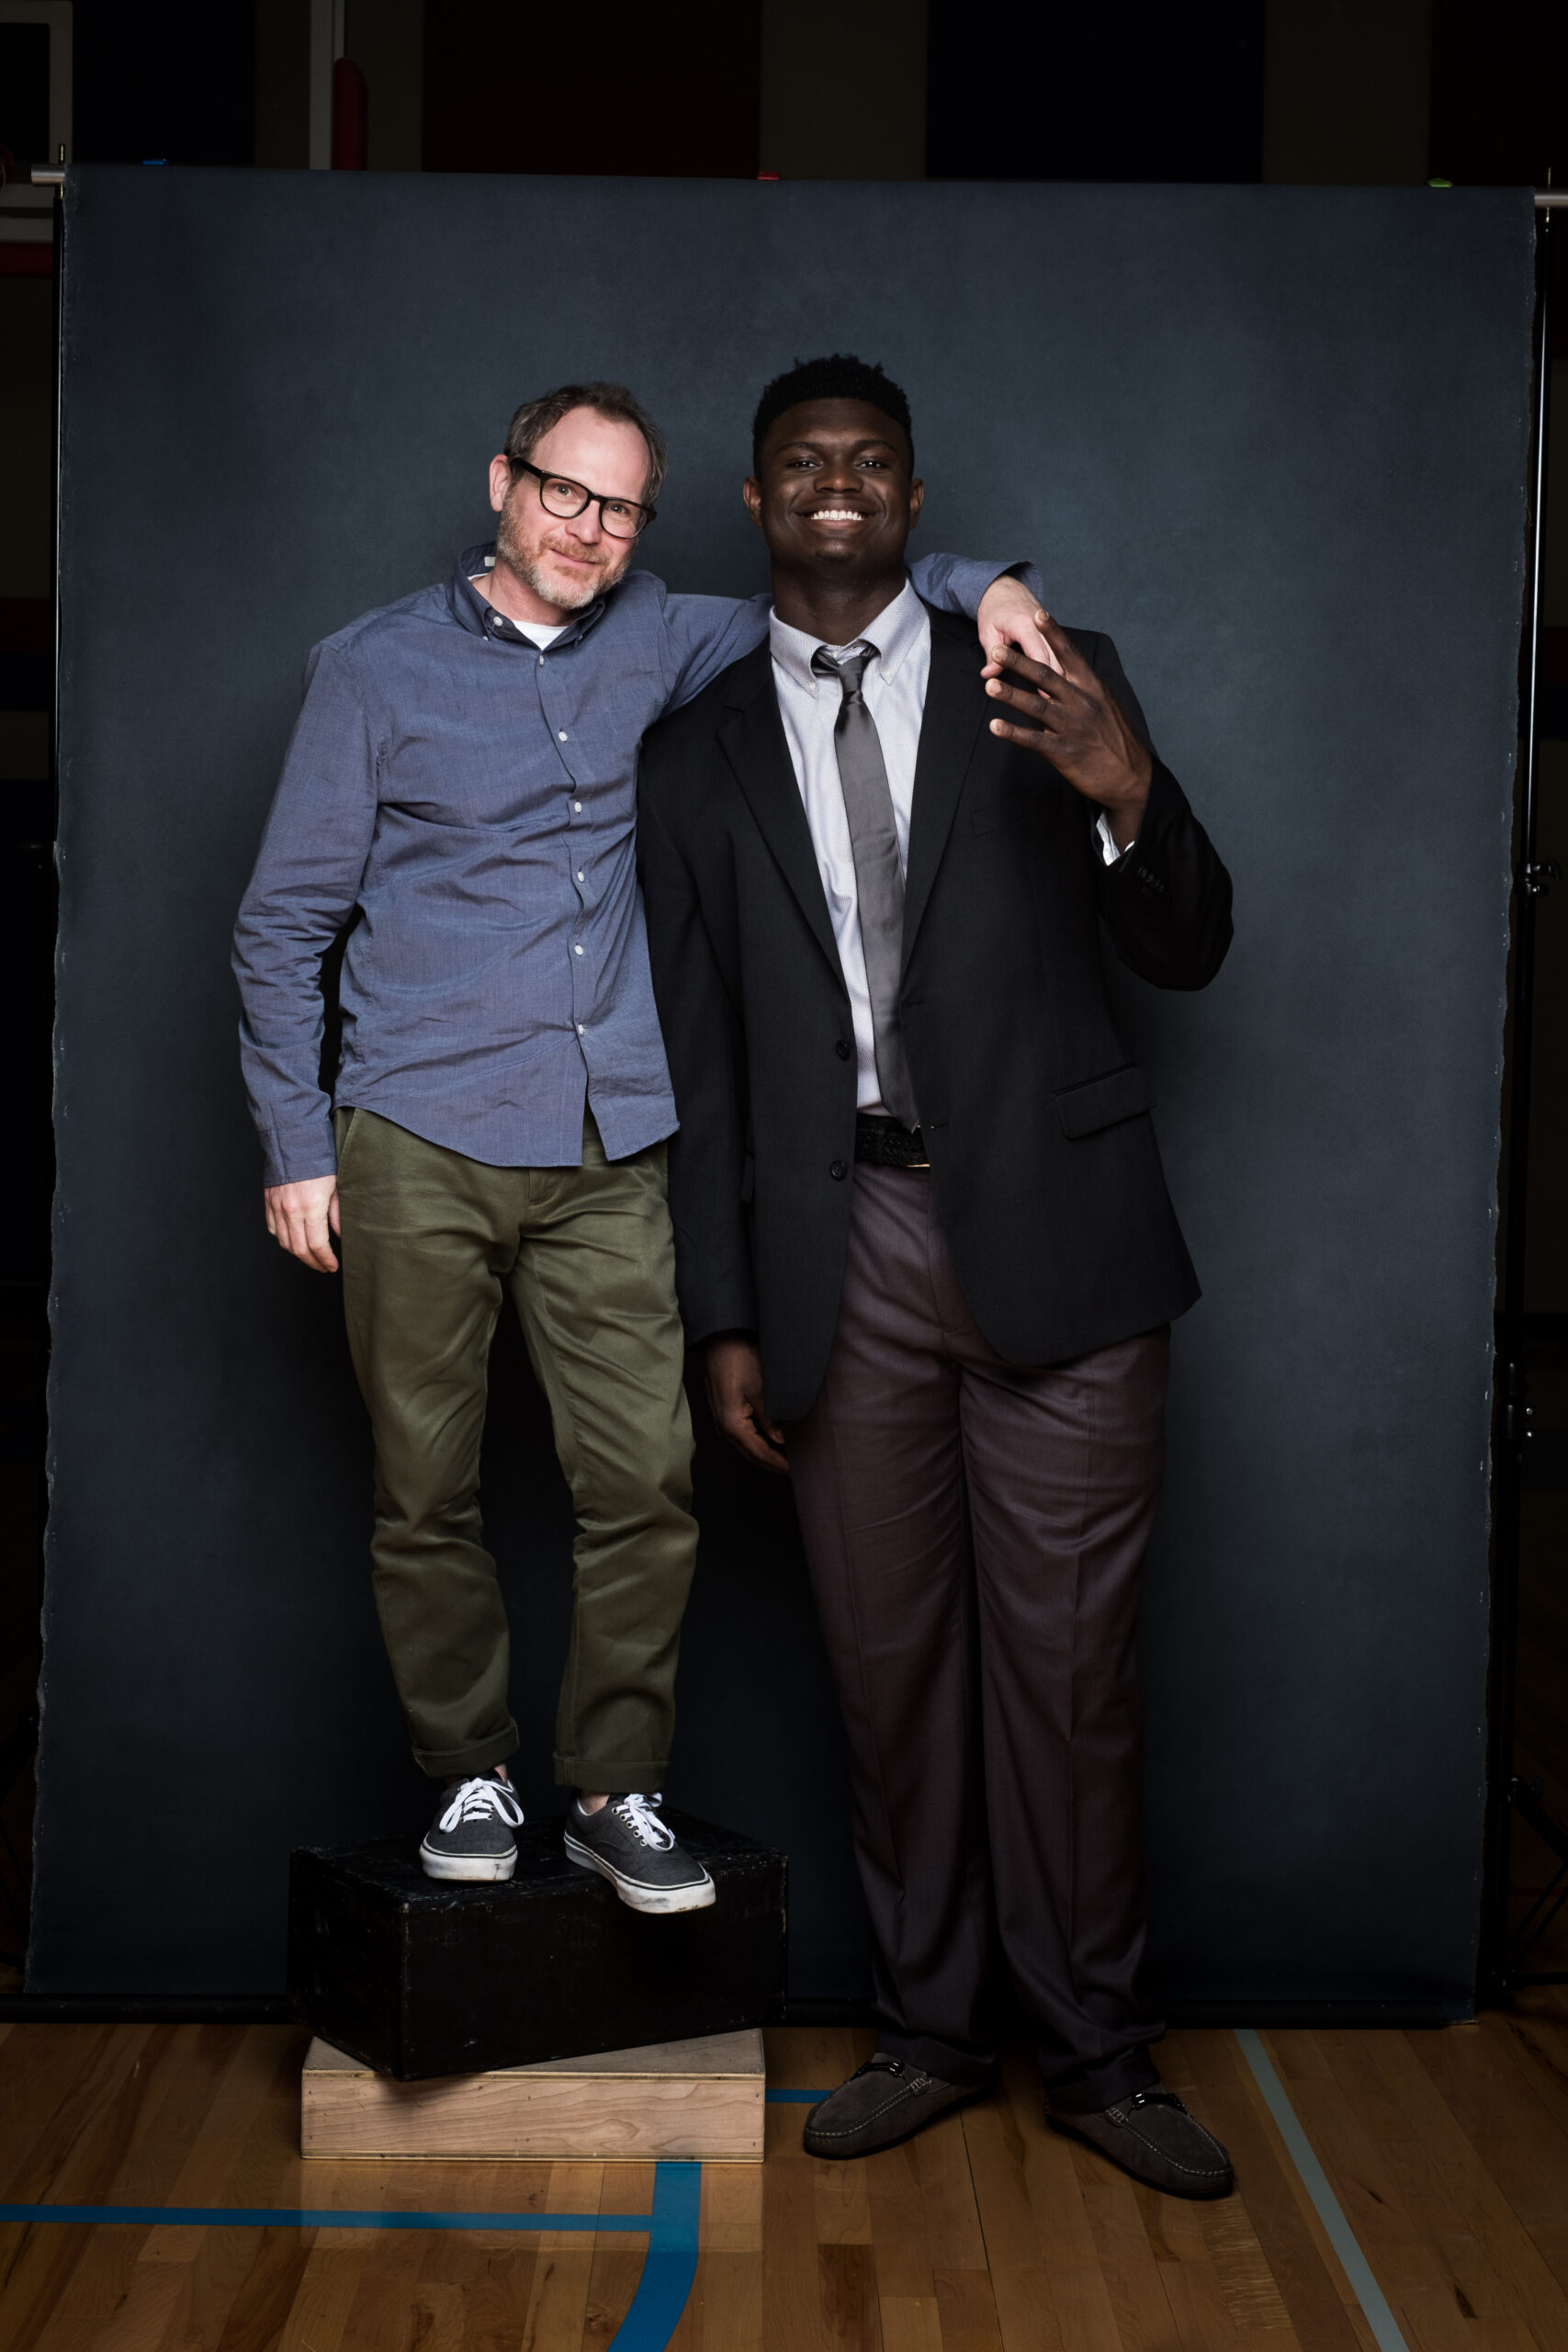 Ian Curcio behind the scenes with Zion Williams capturing a laughable height difference